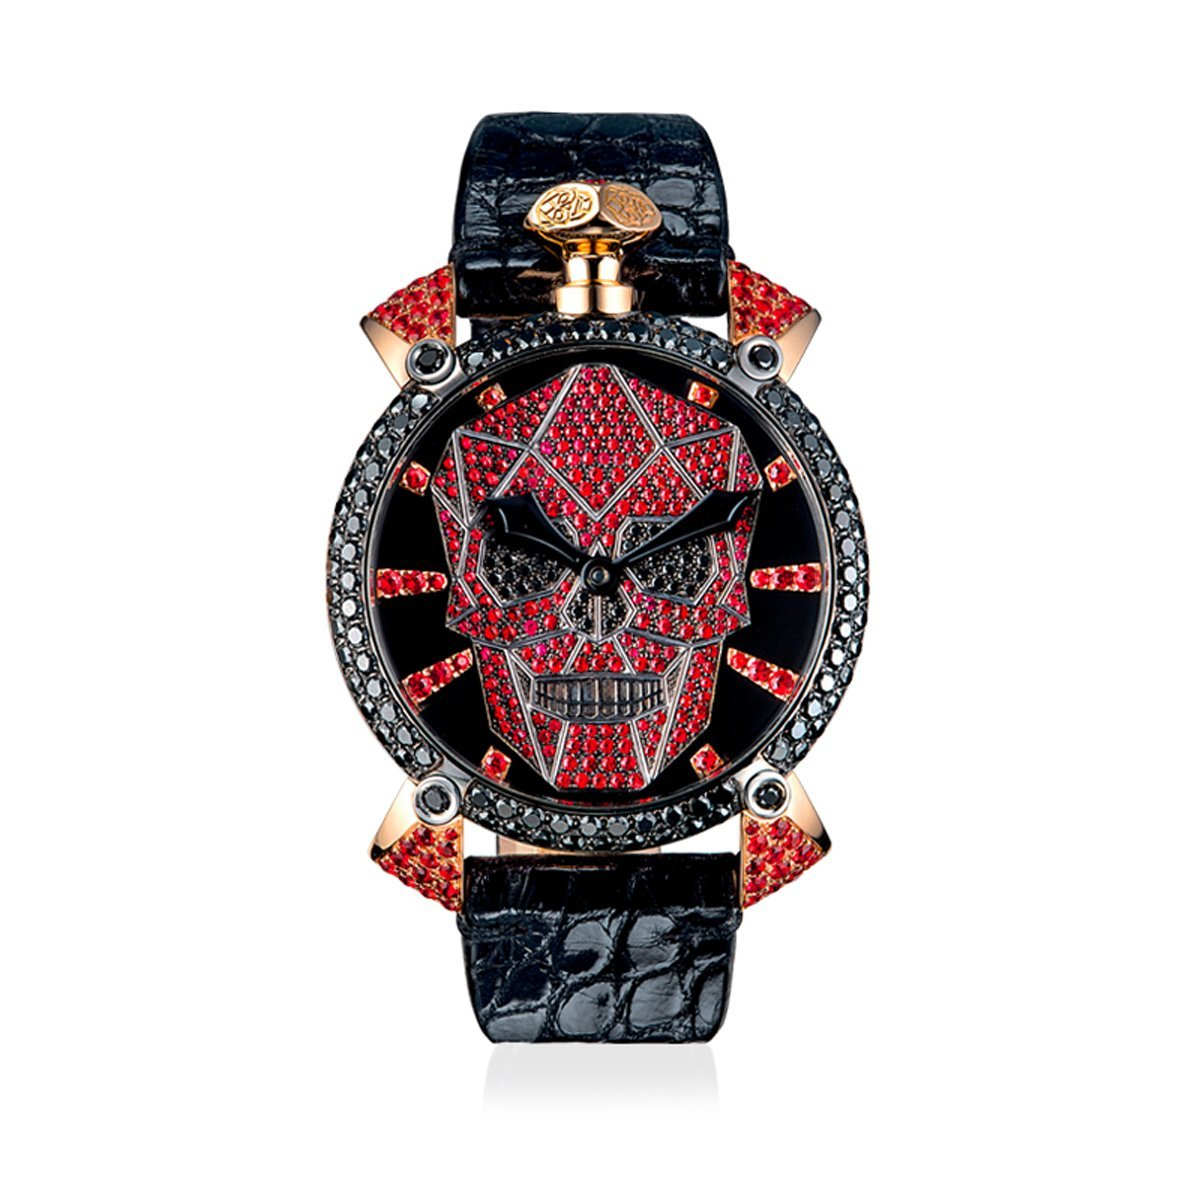 GaGà Milano Manuale 48 Bionic Skull Diamonds Red - Watches & Crystals